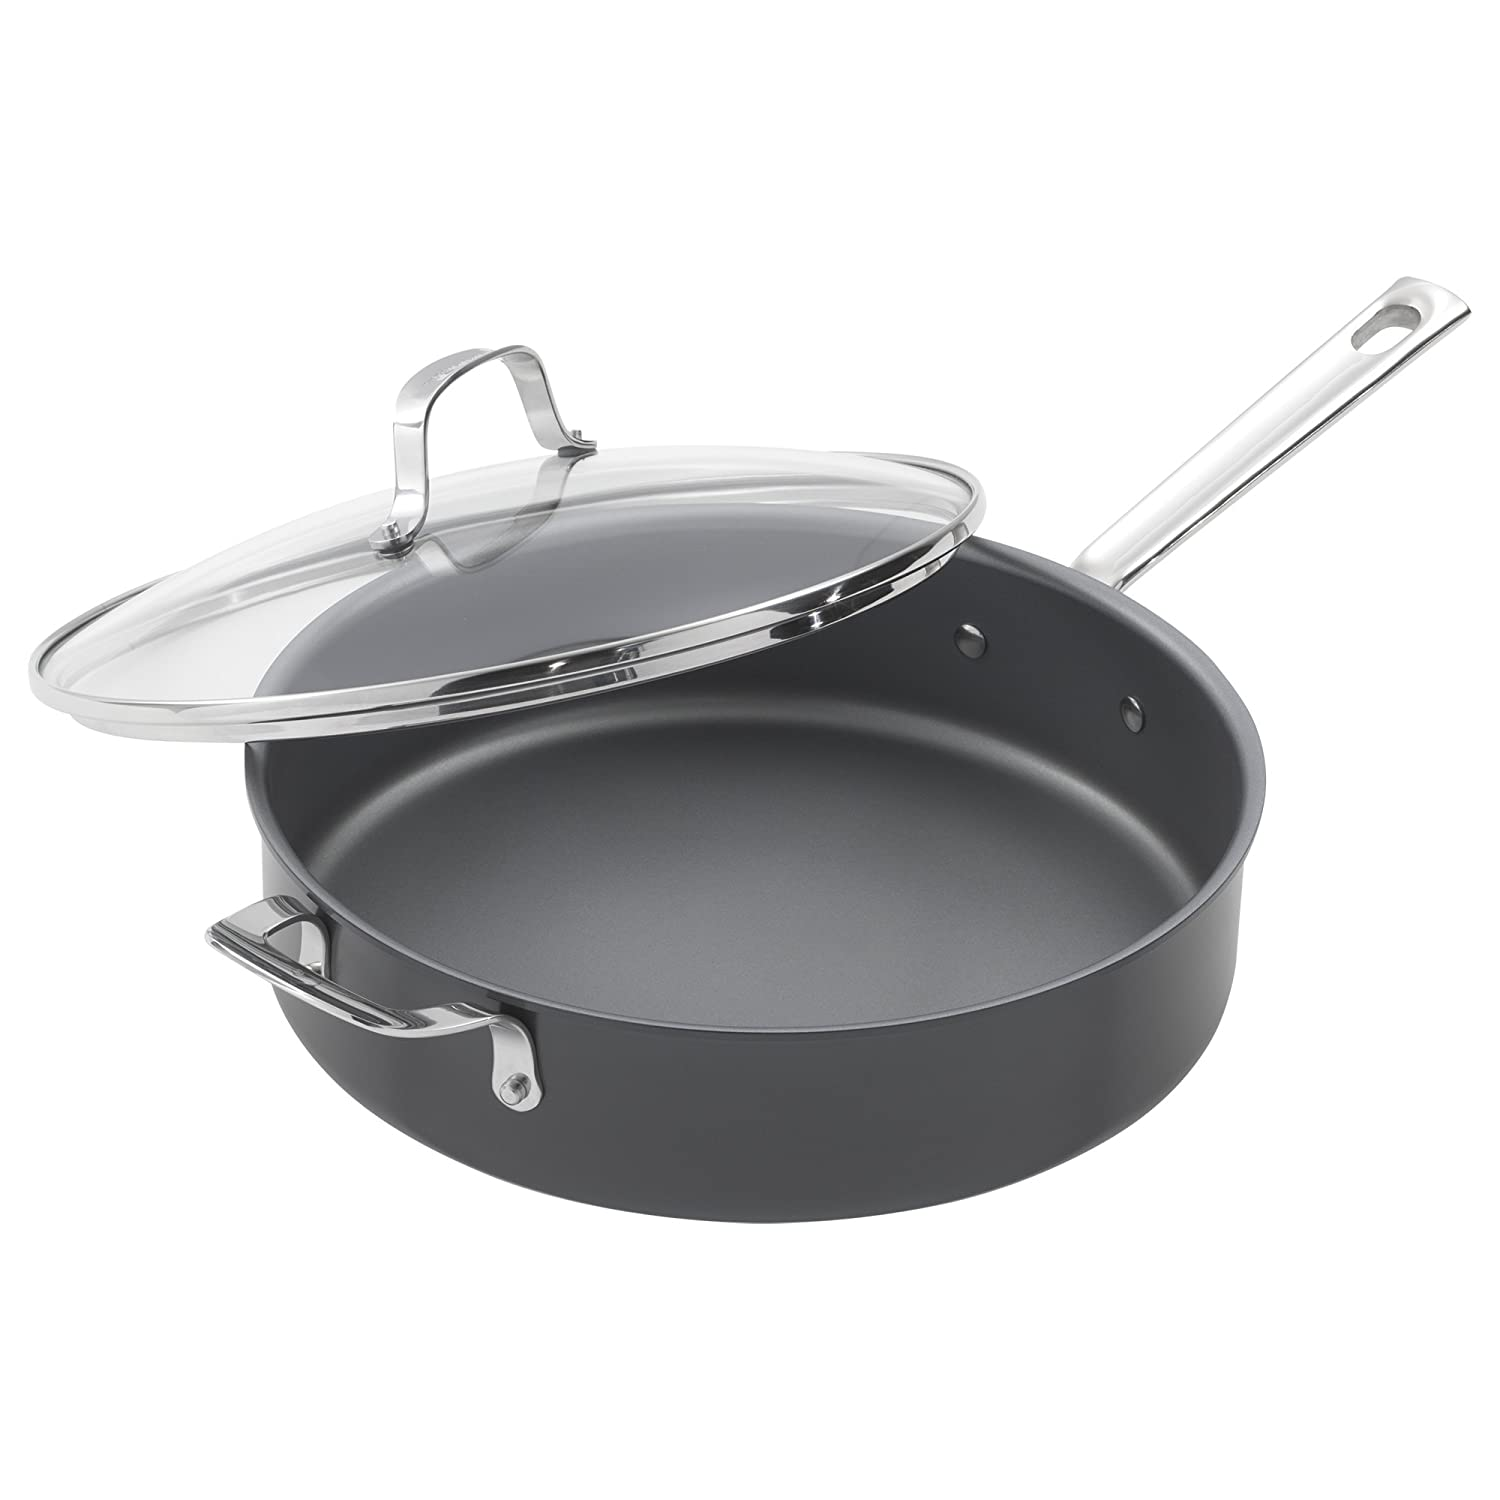 Emeril Lagasse 5-Quart Nonstick Hard Anodized Saute Pan